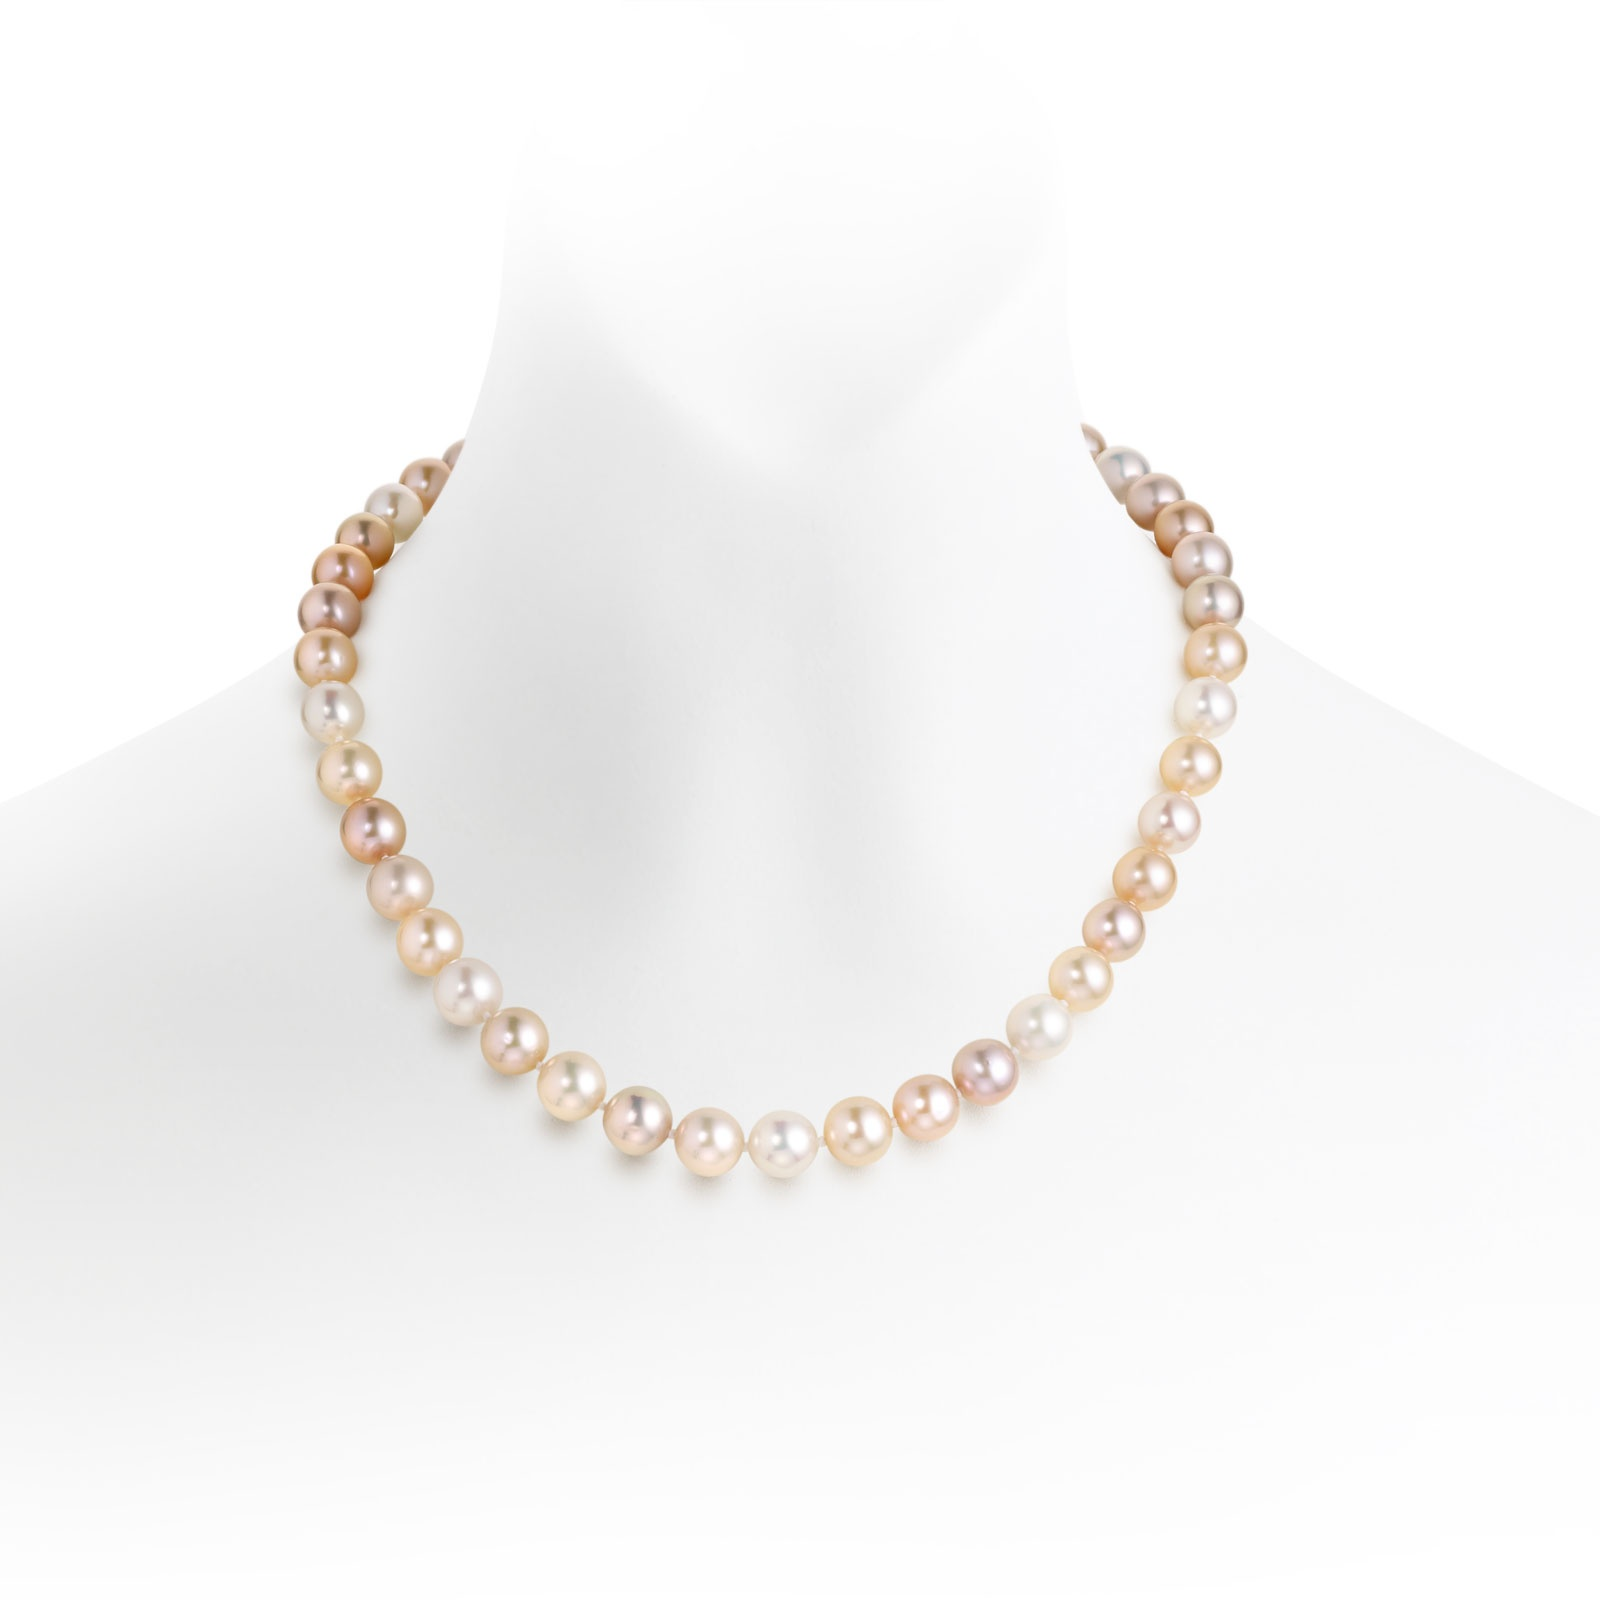 Luxury Multi-coloured Freshwater Pearl Necklace-FNMRYG0025-1